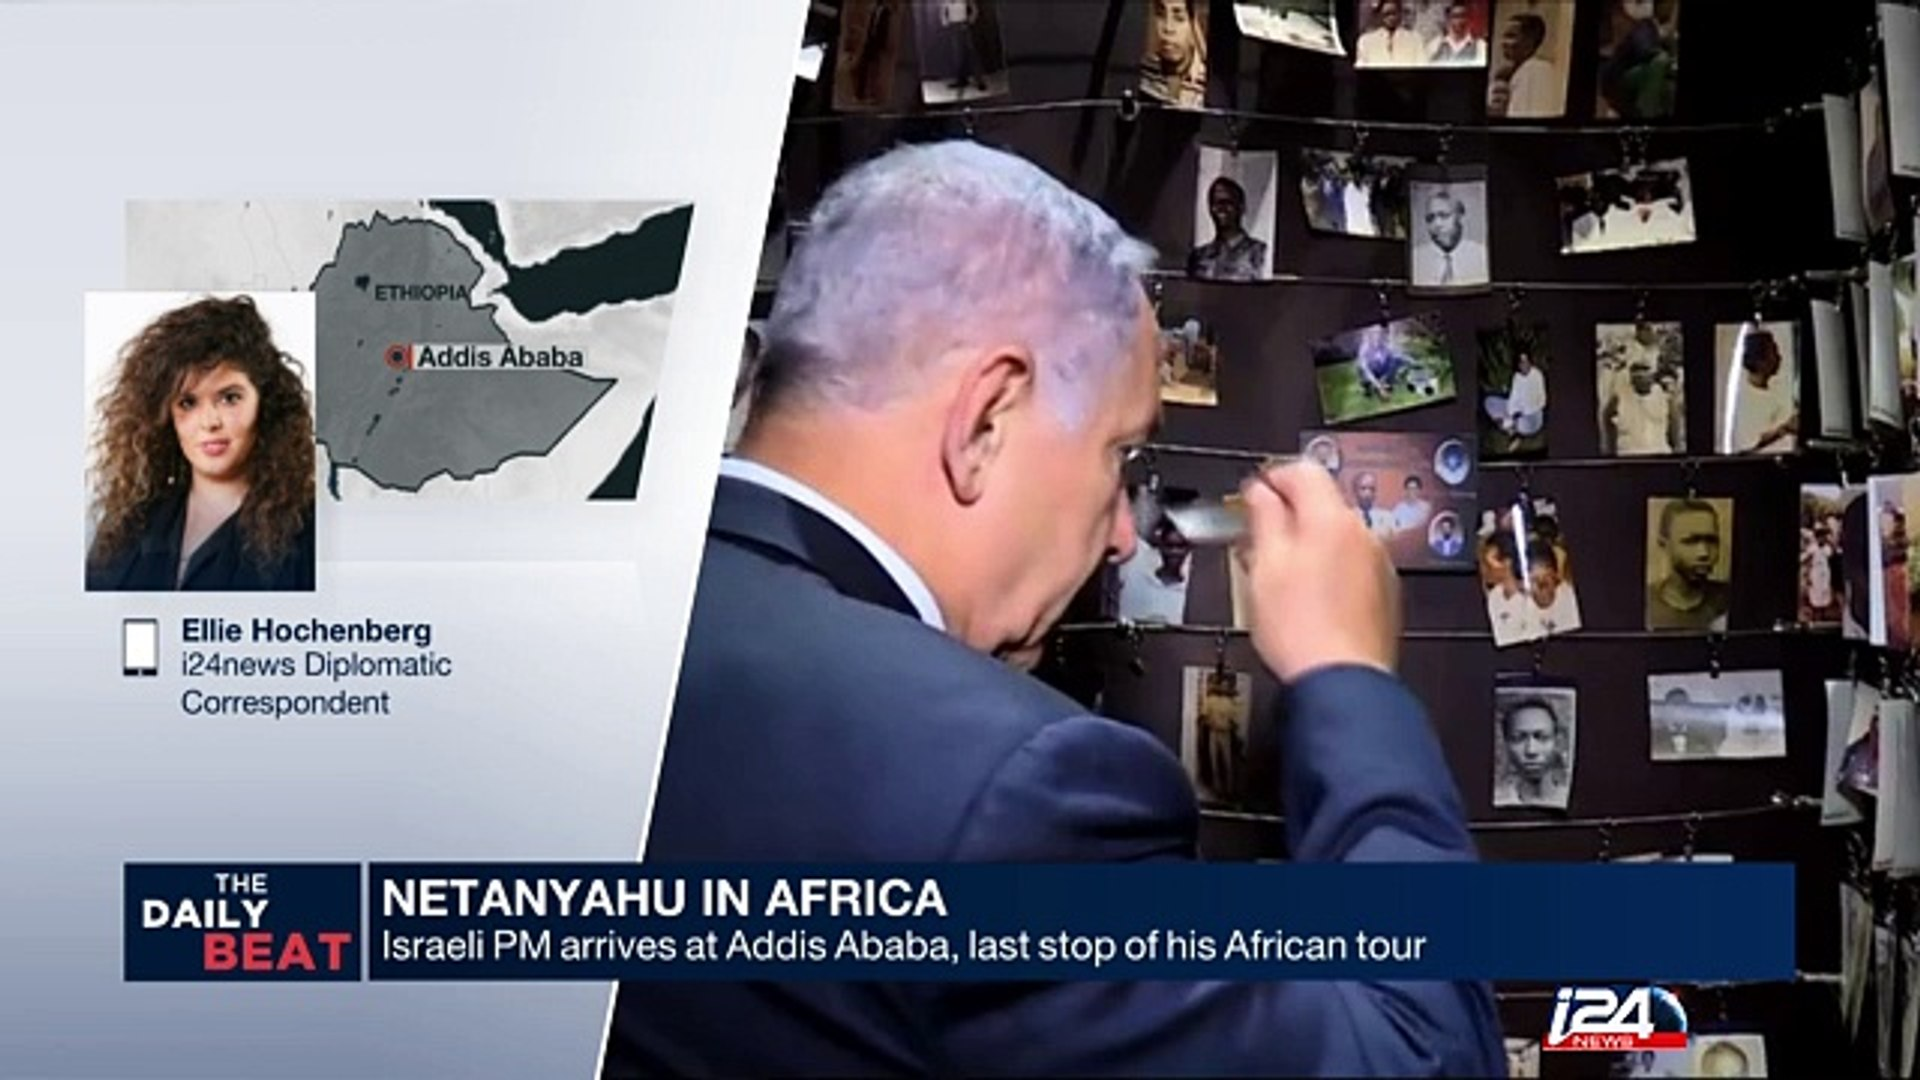 Netanyahu in Africa: Addis Ababa, last stop of his African tour